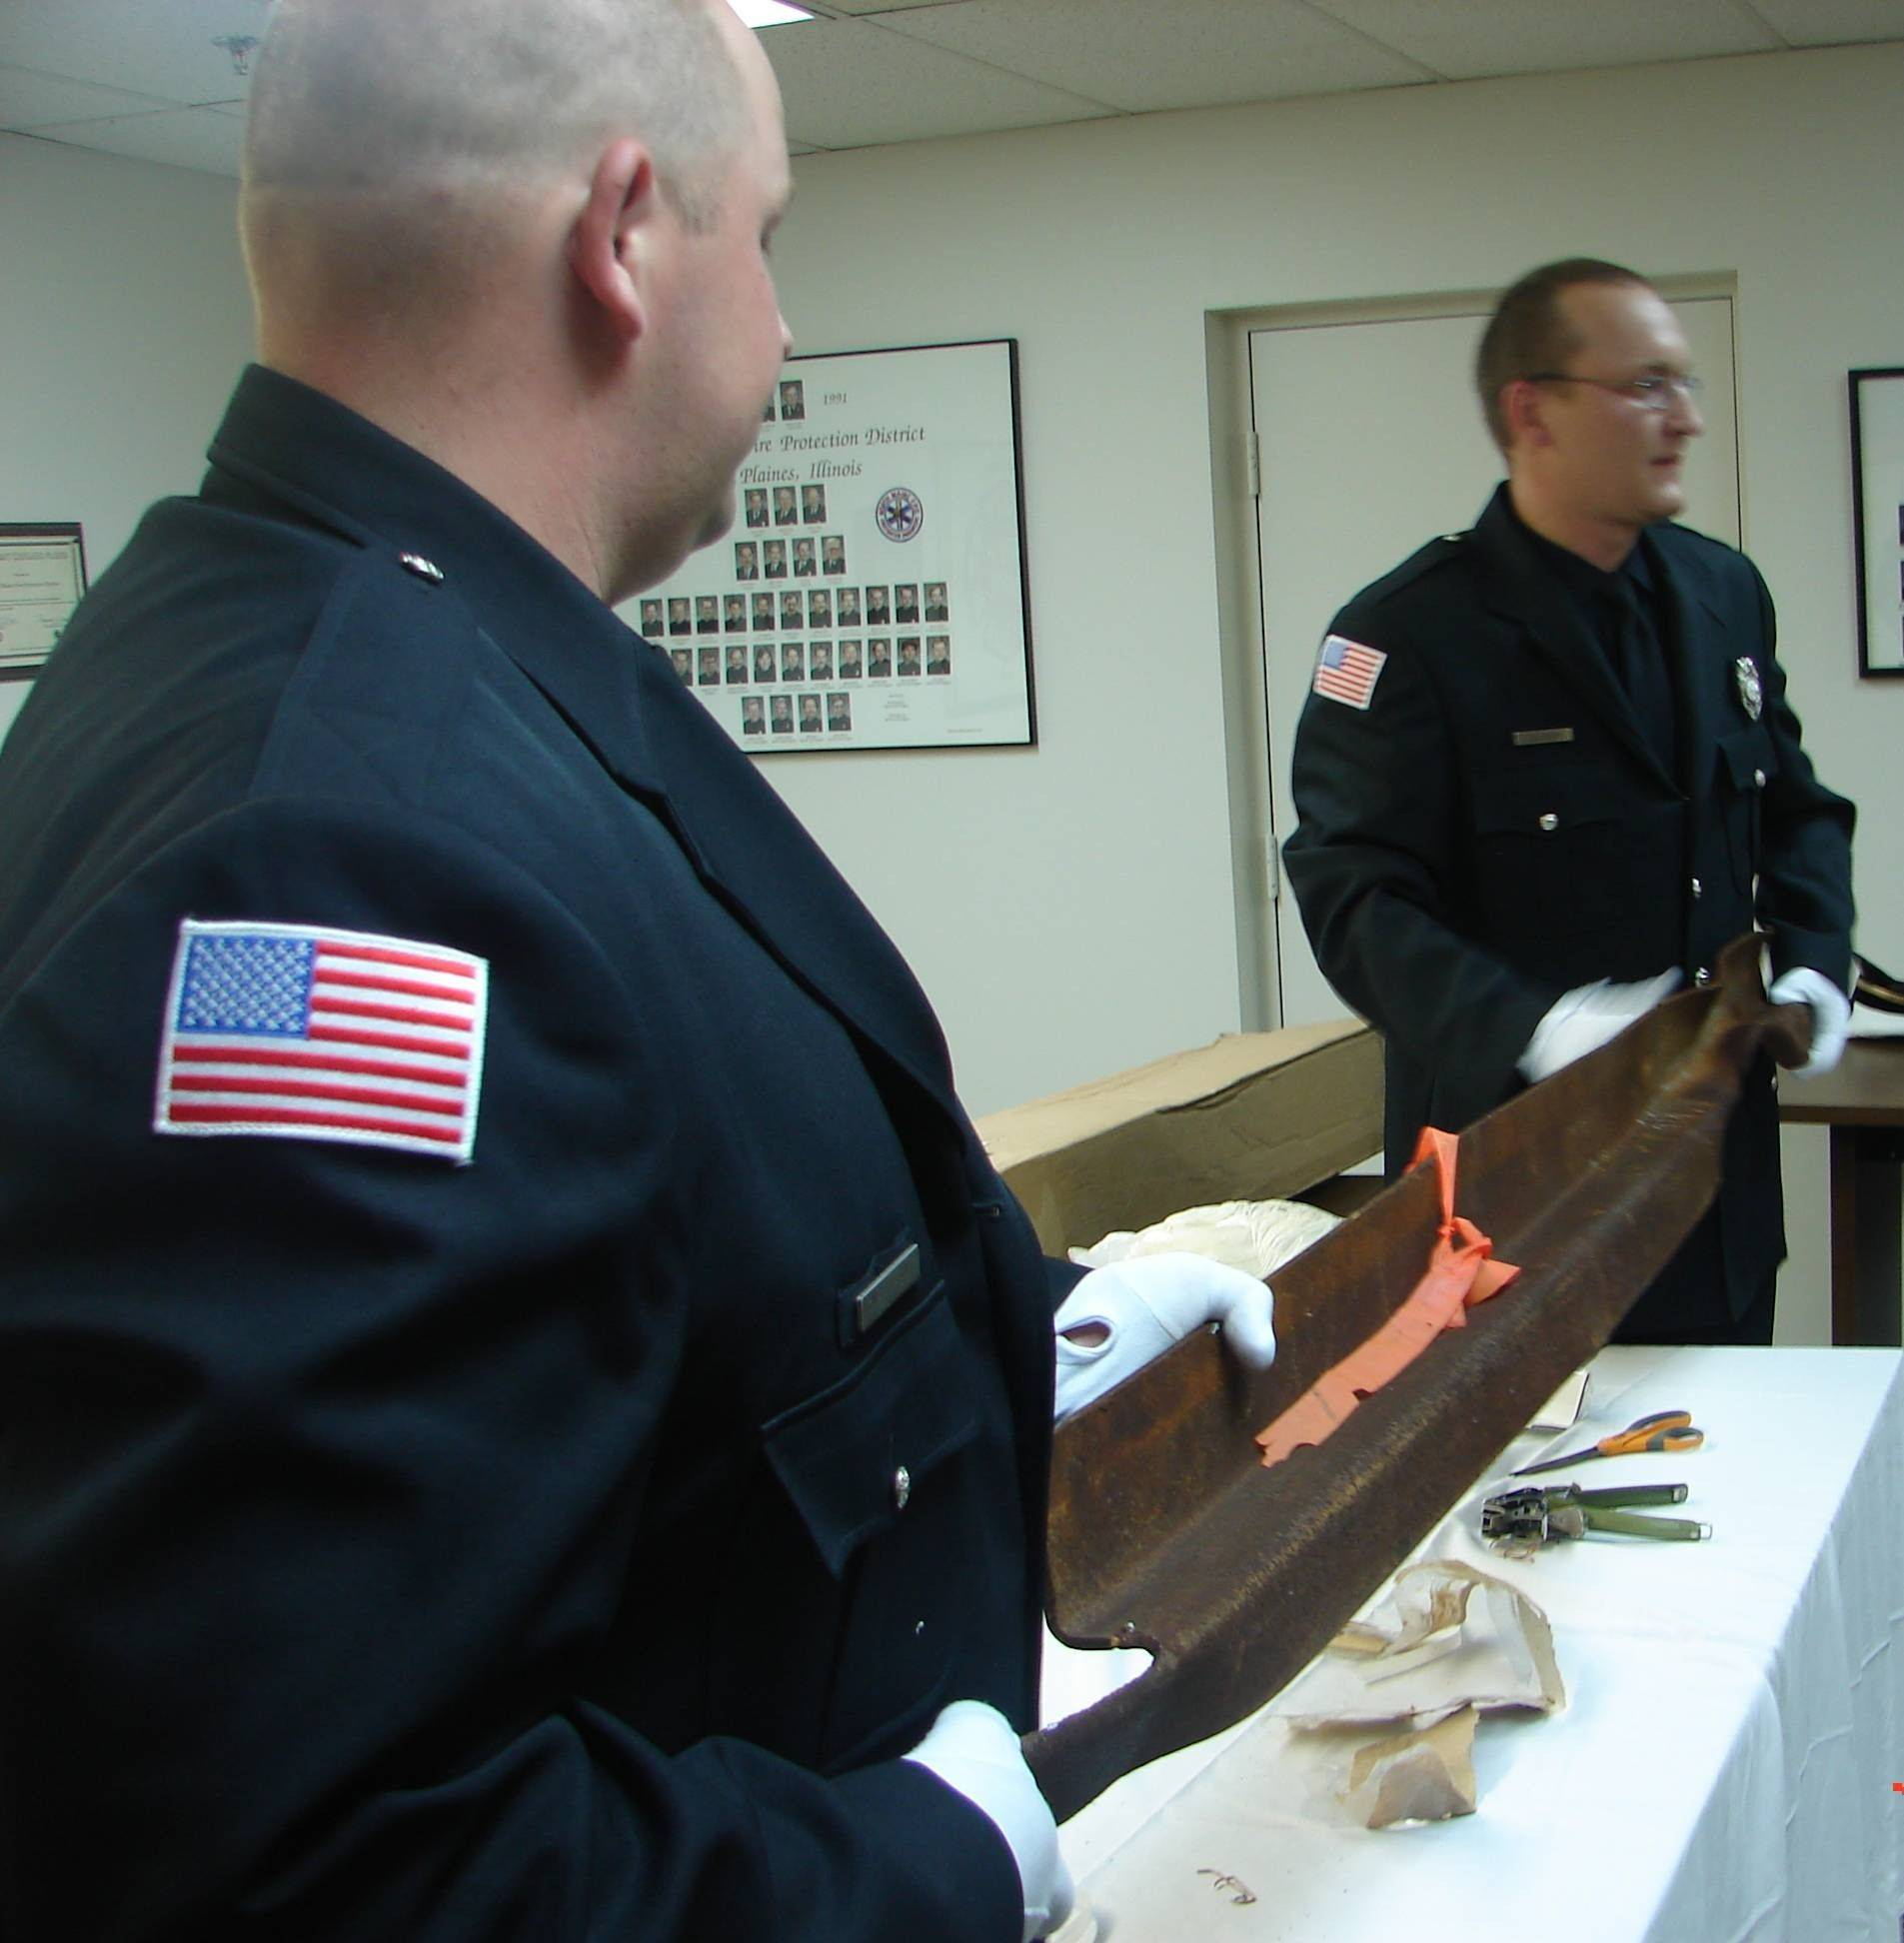 Firefighter/paramedics Nick Rusz, left, and Greg Zalewski hold up a piece of steel from the World Trade Center towers unveiled by the North Maine Fire Protection District during a public event this week. The beam will become part of a memorial at Ridgewood Cemetery in Des Plaines.